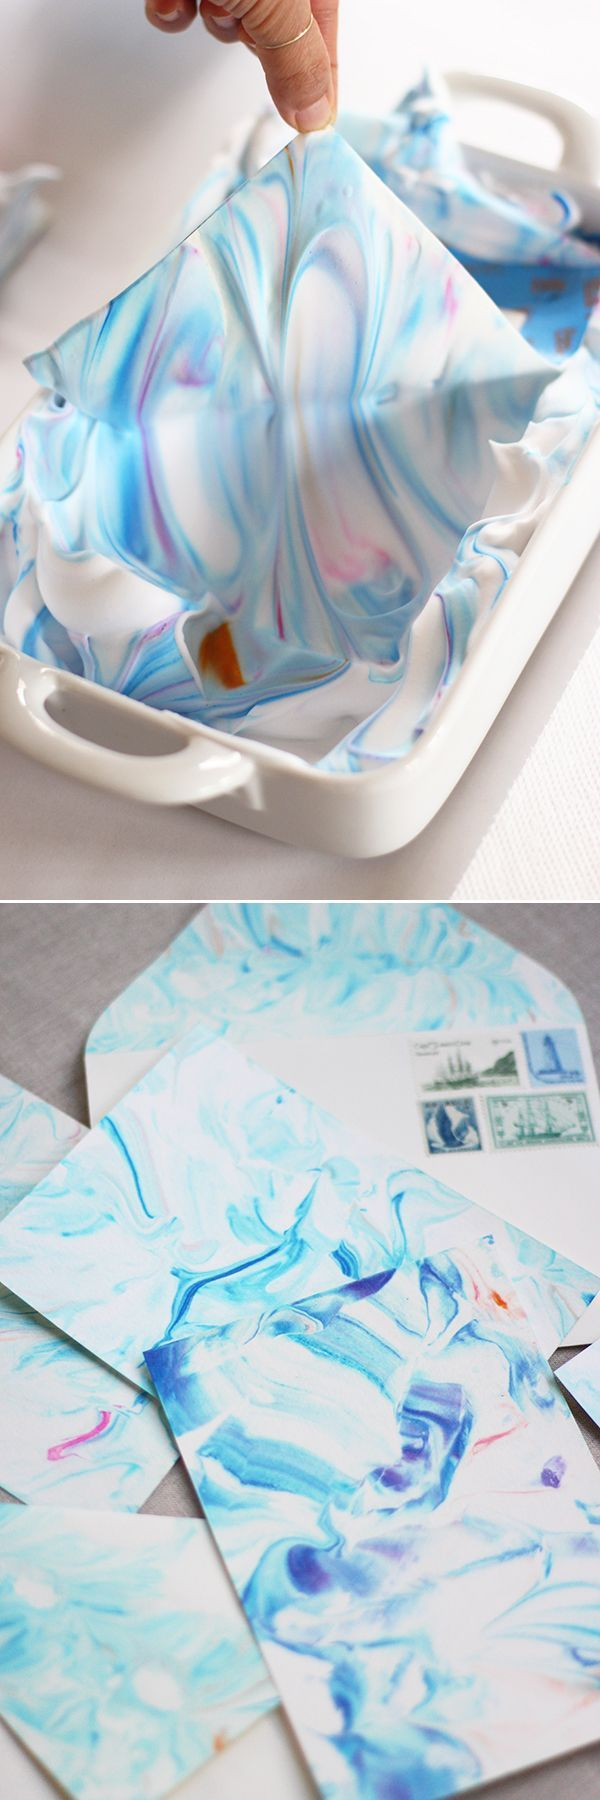 marbling with shaving cream and food dye.